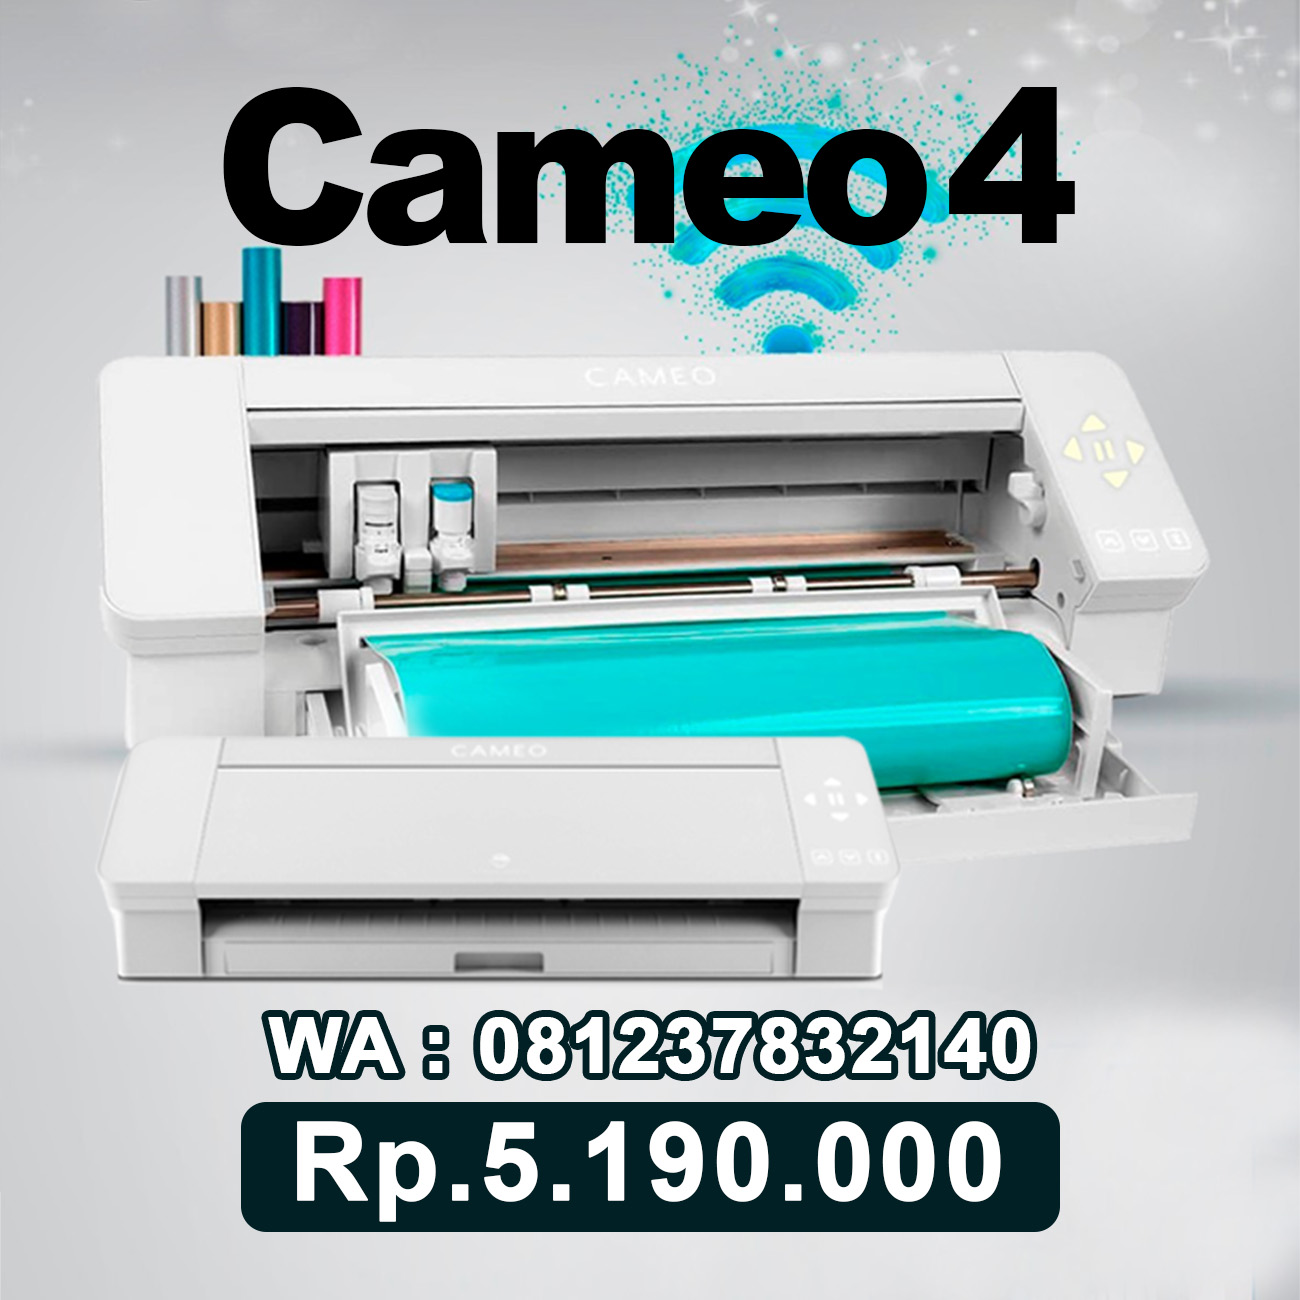 JUAL MESIN CUTTING STICKER CAMEO 4 Kotabumi